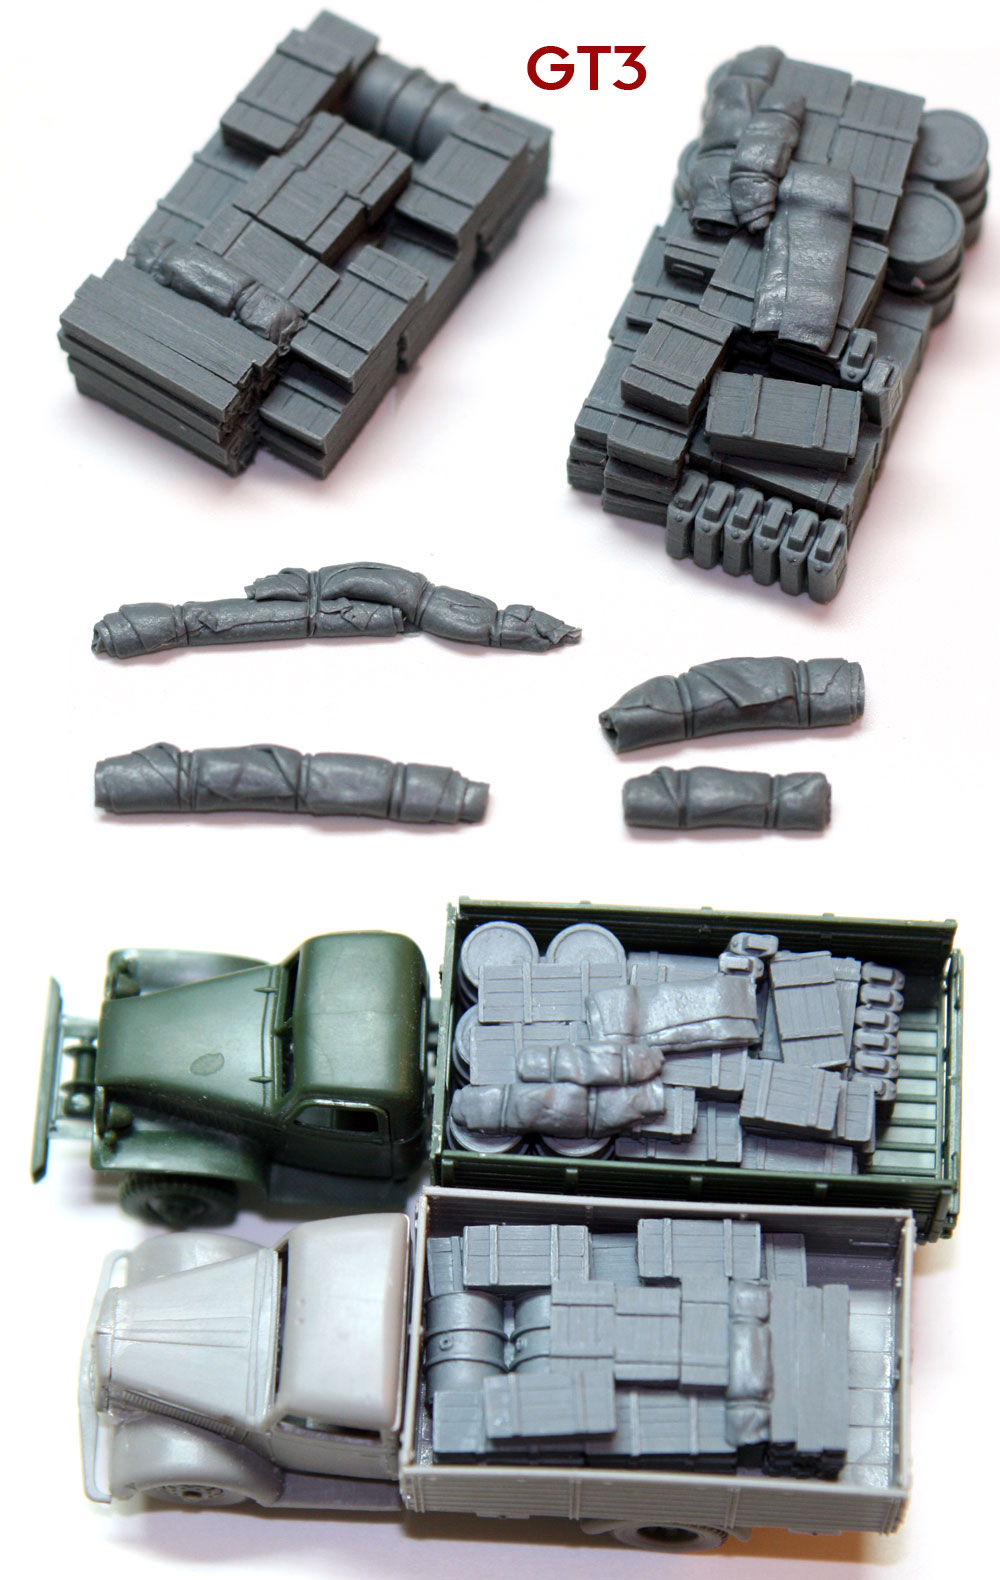 1/72 GT3 German Truck Blobs #3